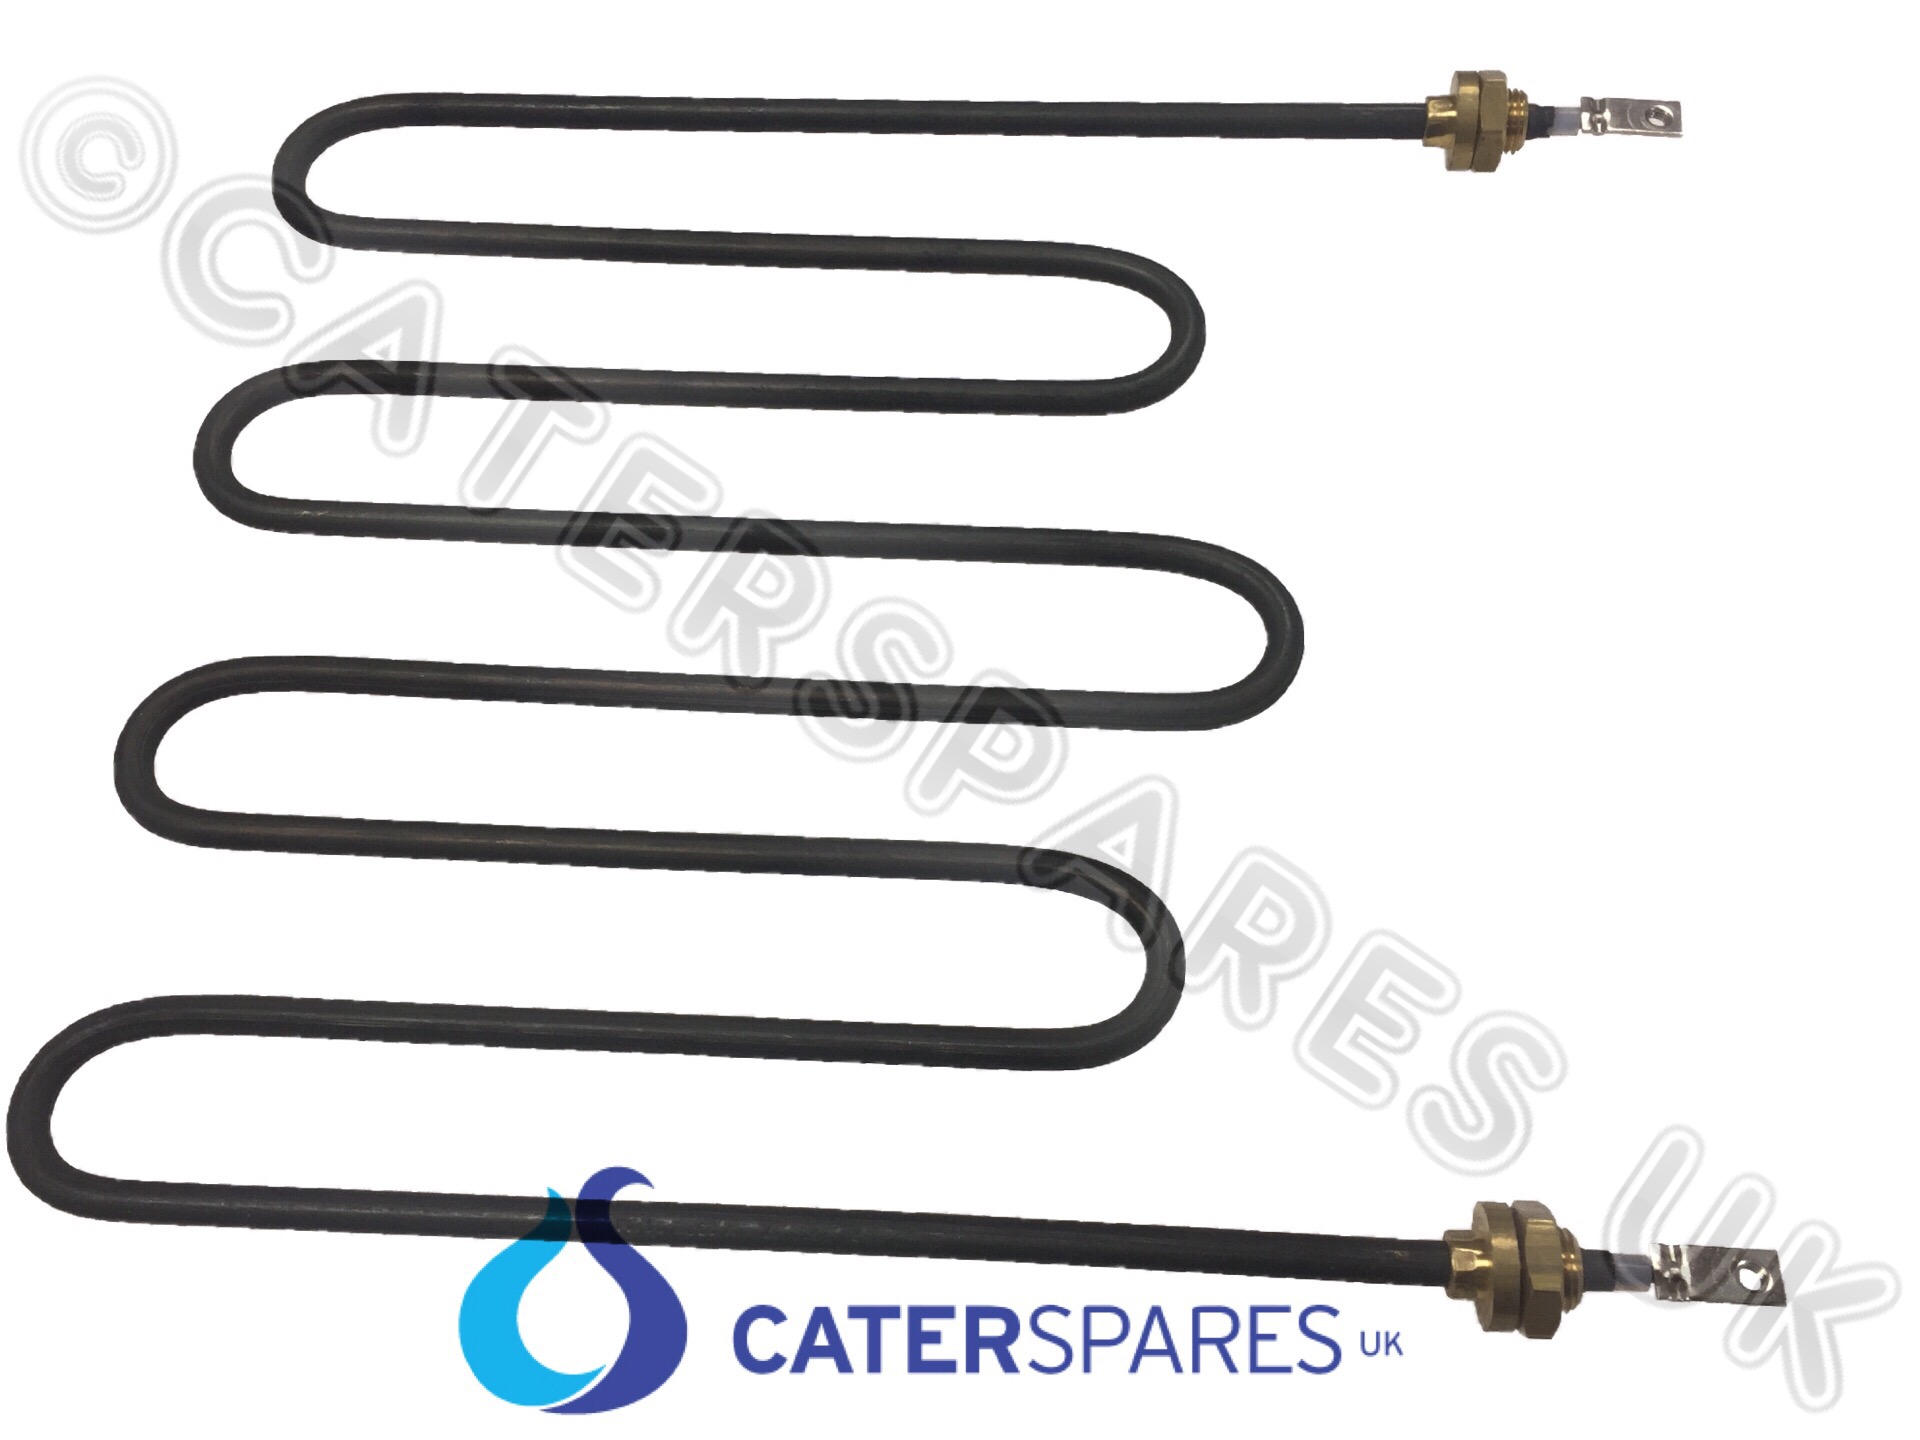 Heating Elements Page 6 Caterspares